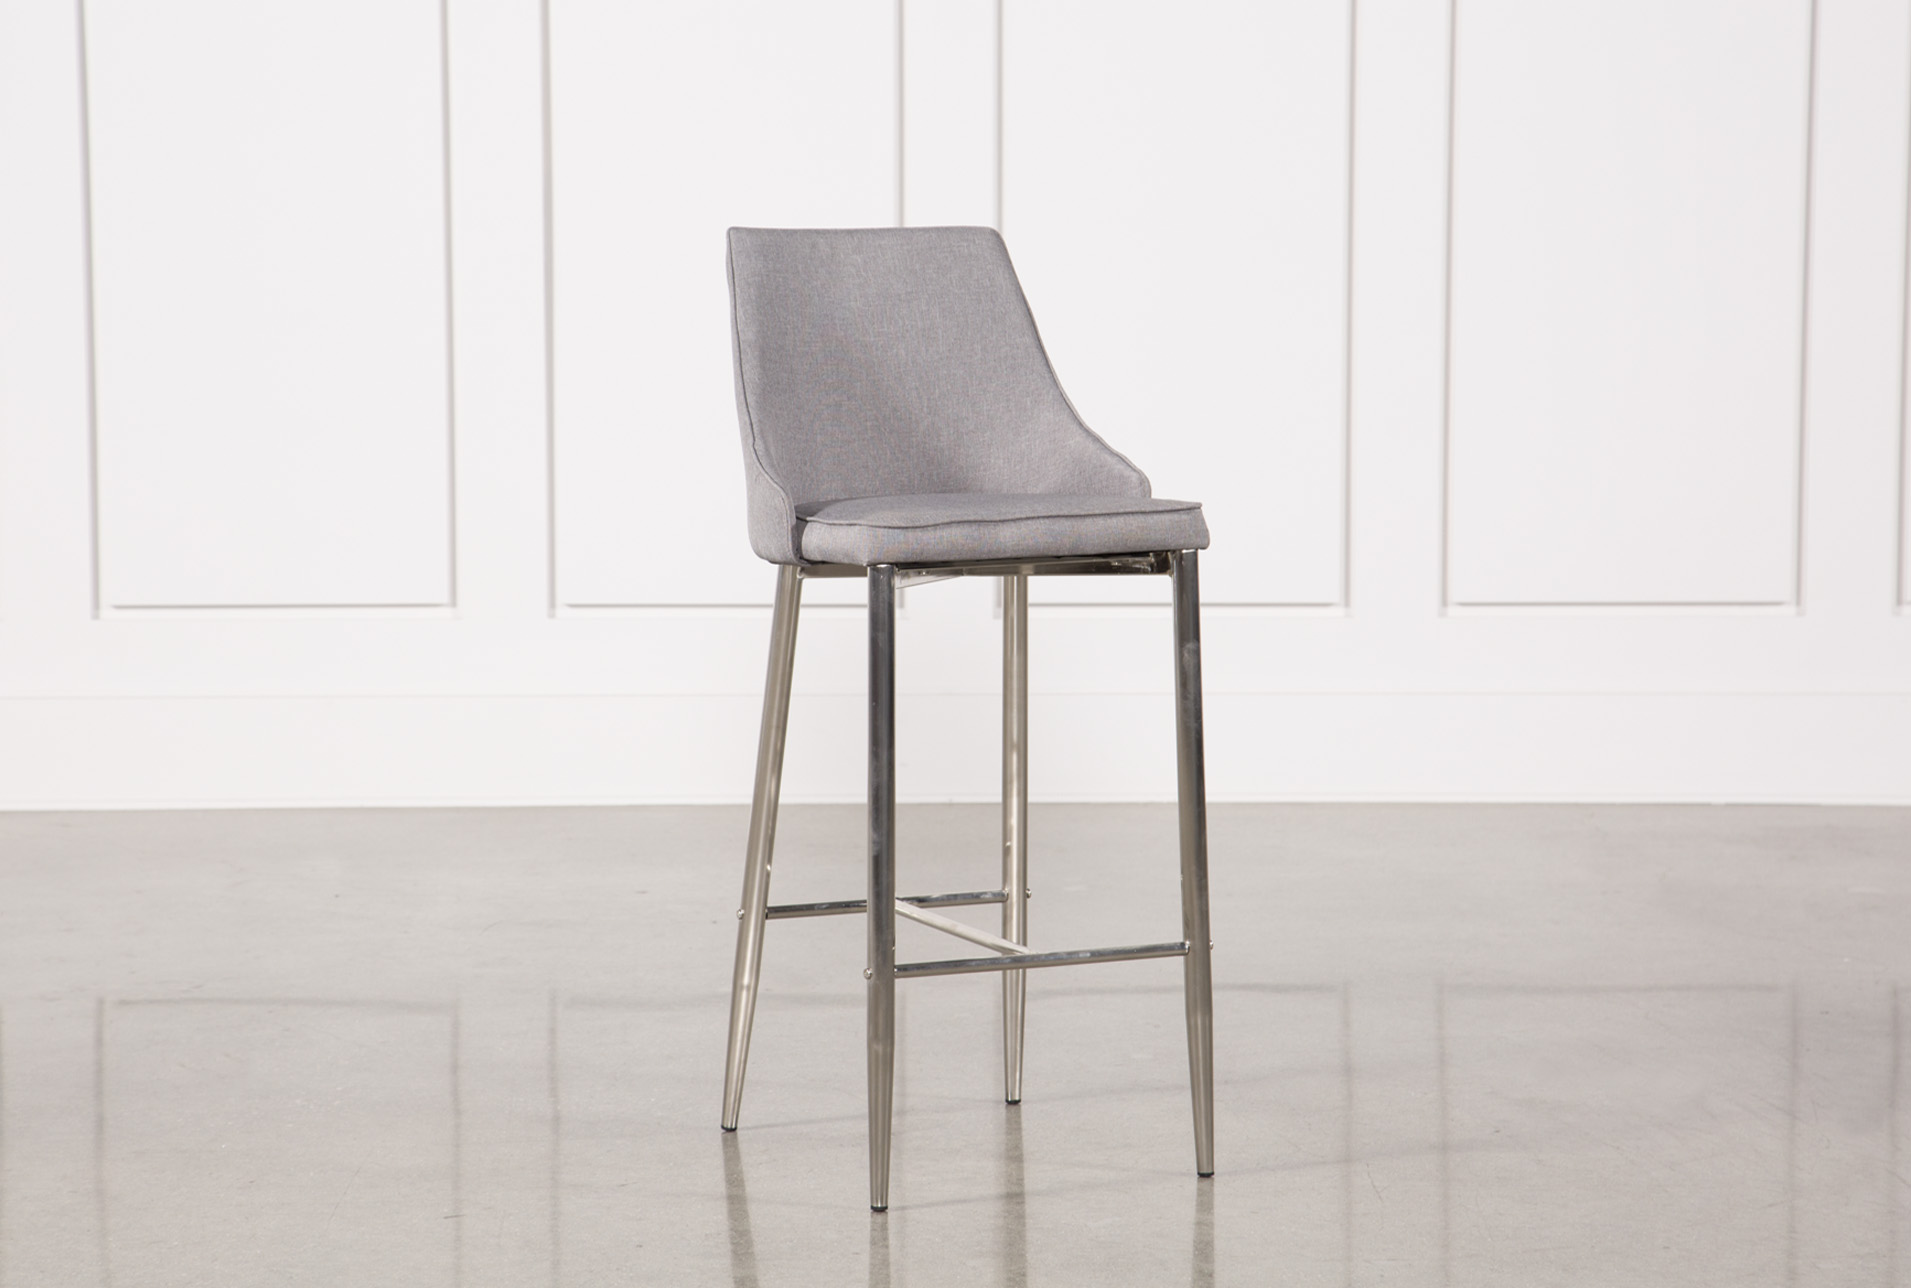 Suki 30 Inch Barstool (Qty: 1) Has Been Successfully Added To Your Cart.